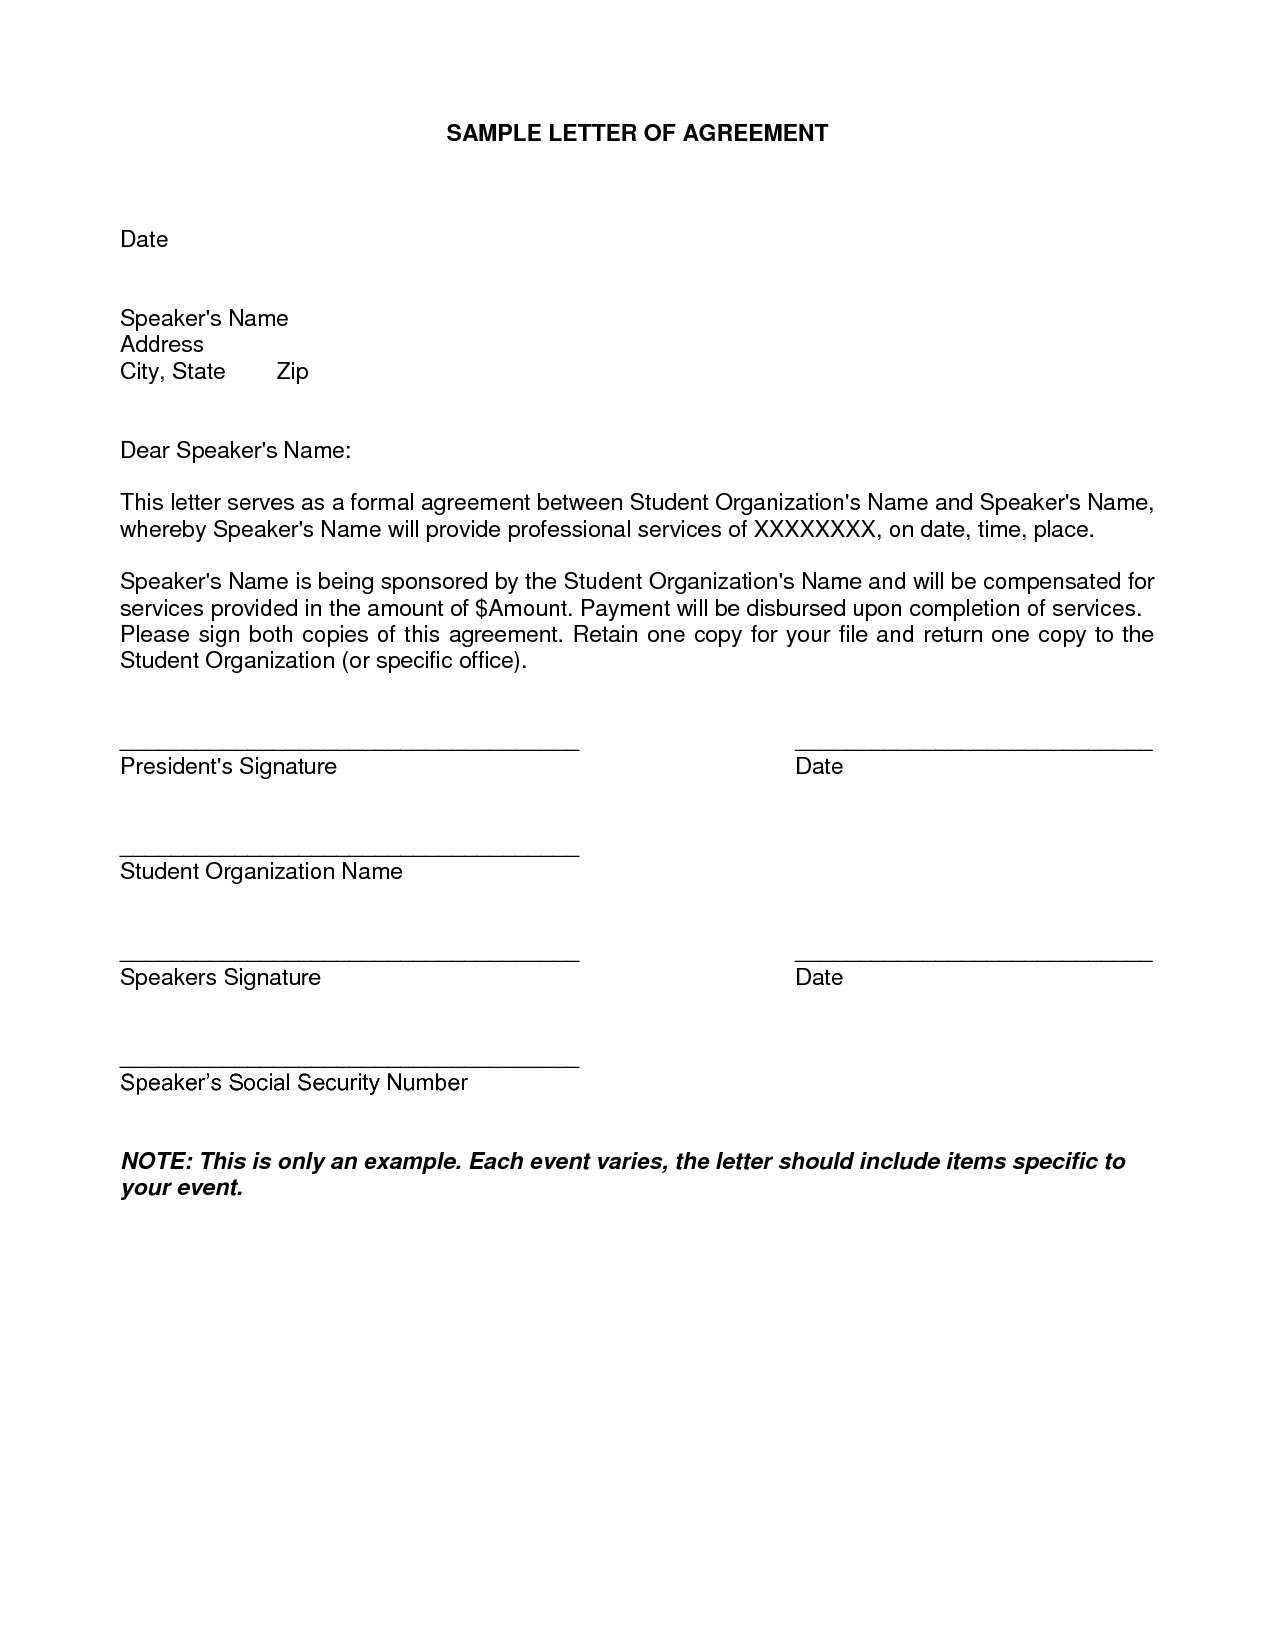 Irs Letter Template - Letter to the Irs Template